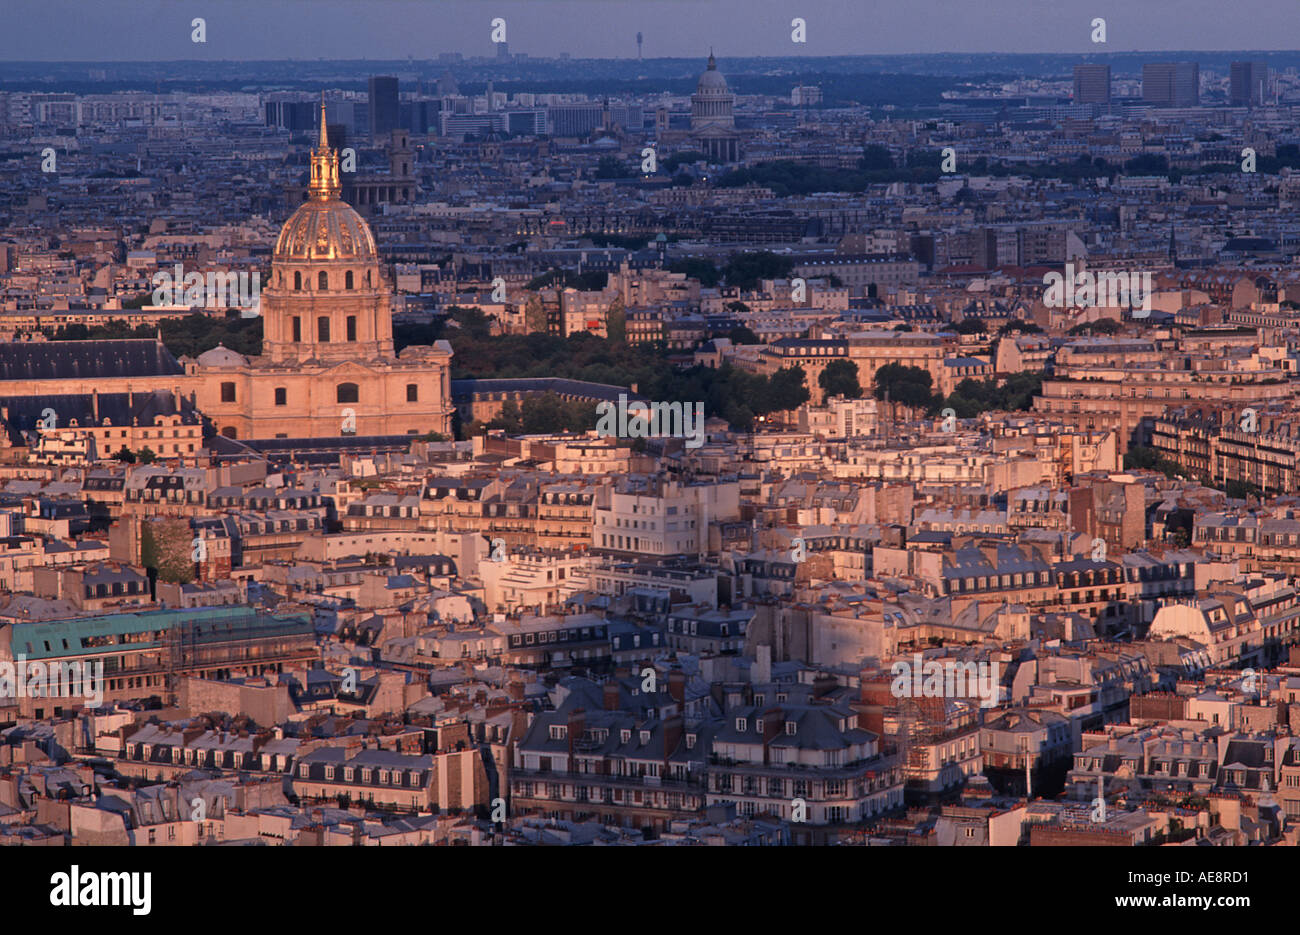 Sunset view from the Eiffel Tower across Paris towards the golden dome of the church of Saint Louis des Invalides France - Stock Image